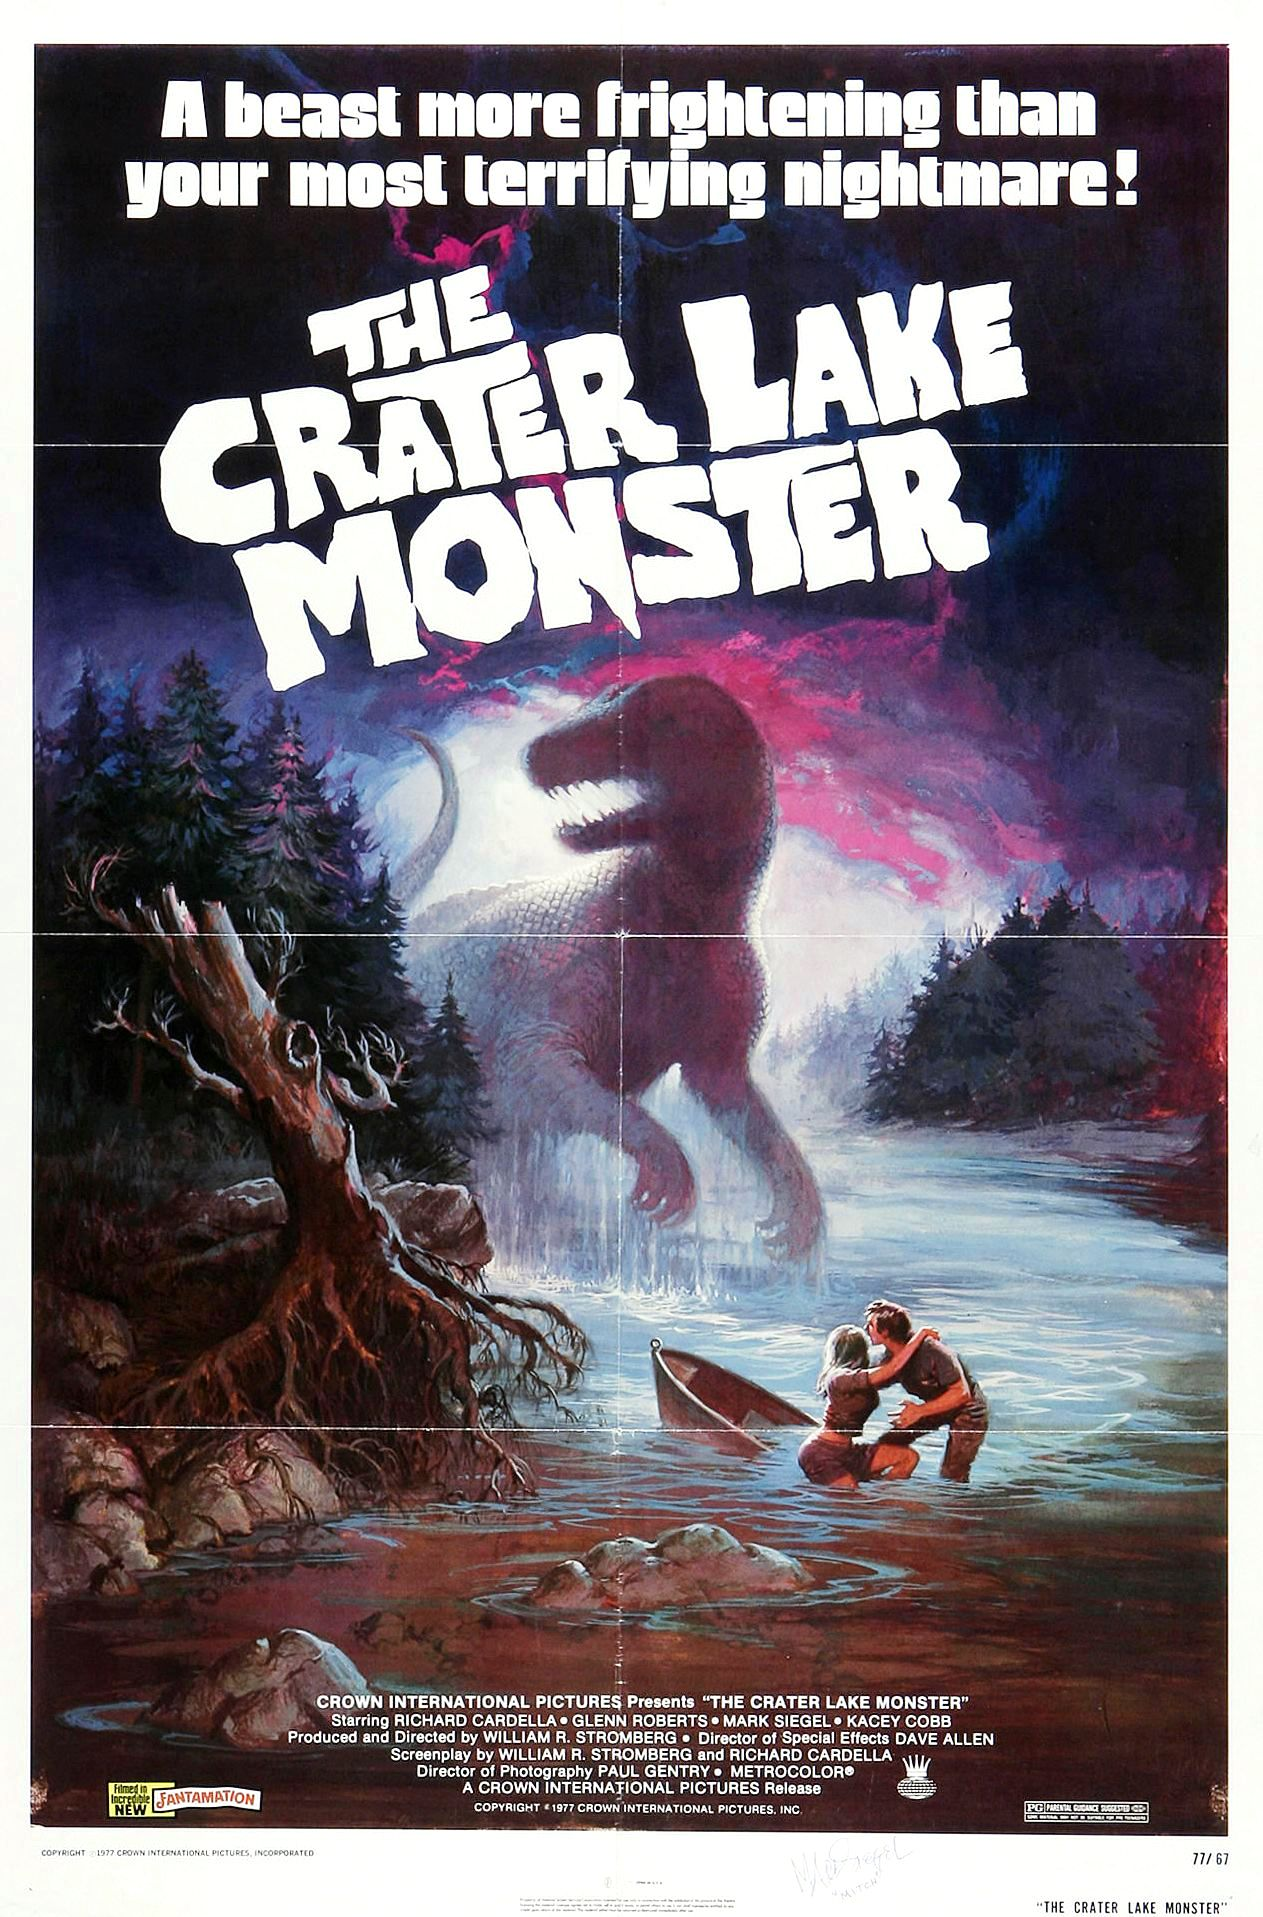 http://www.serialkillercalendar.com/VHSWASTELAND/POSTERS-HIGH-RESOLUTION/crater_lake_monster_poster_01.jpg